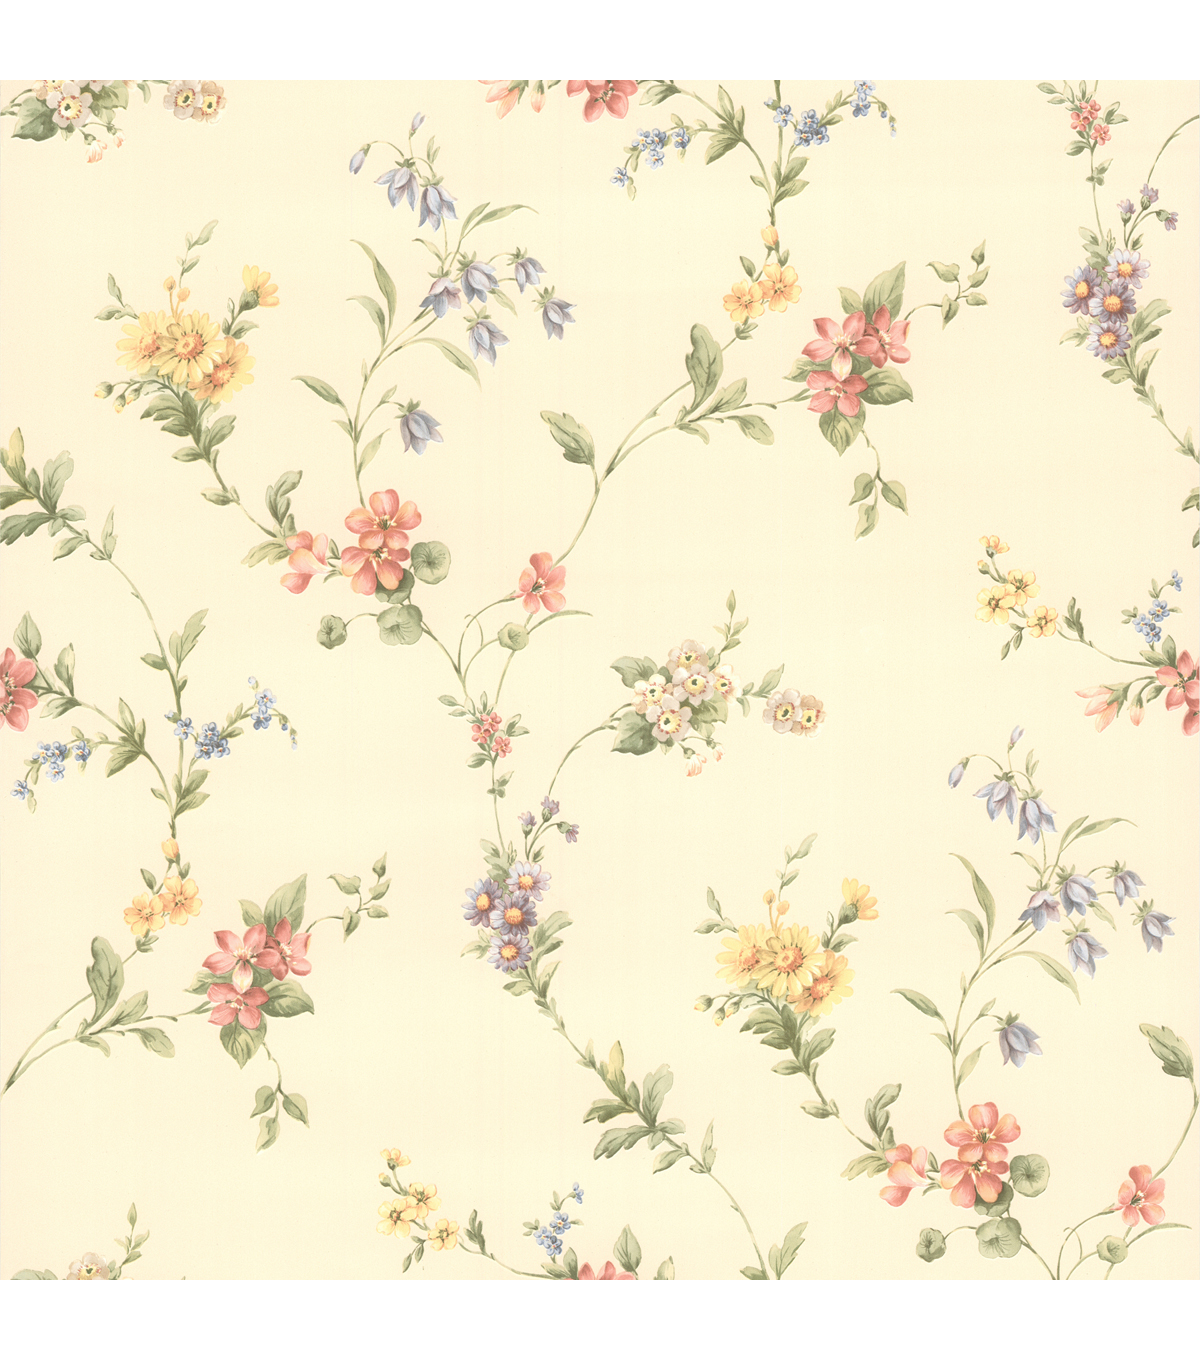 Suzanne Taupe Floral Trail Wallpaper Sample